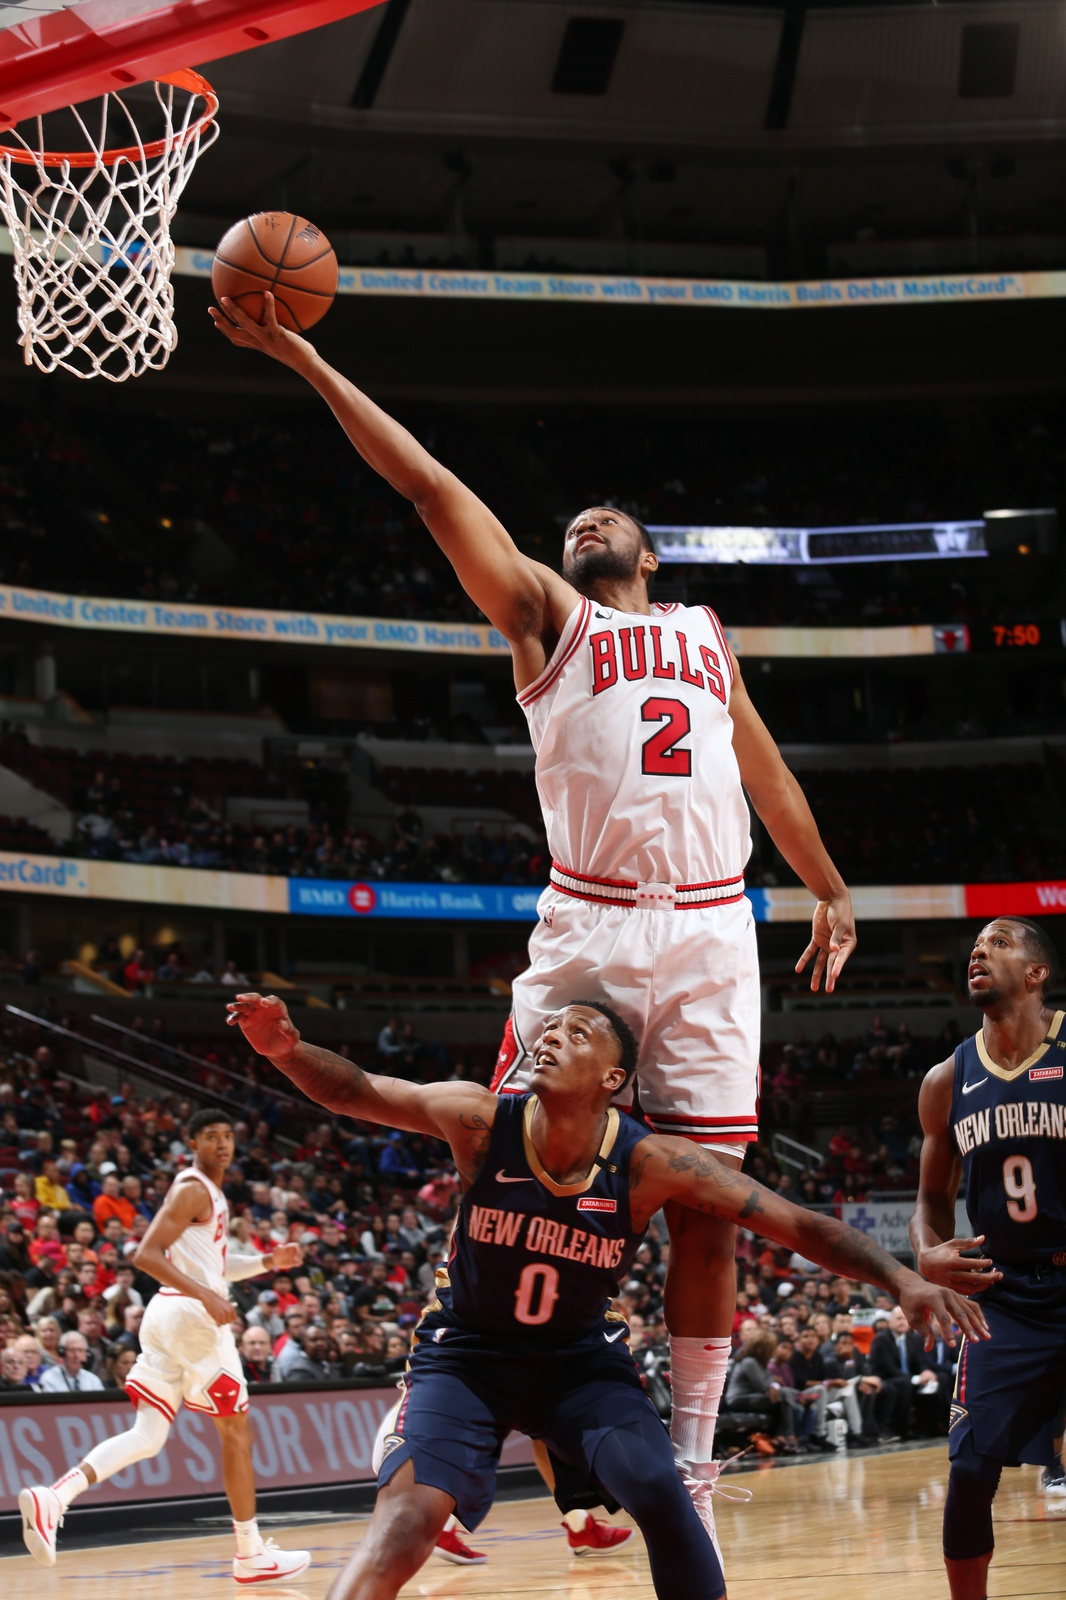 Jabari Parker #2 of the Chicago Bulls shoots the ball against the New Orleans Pelicans during a pre-season game on September 30, 2018 at the United Center in Chicago, Illinois.